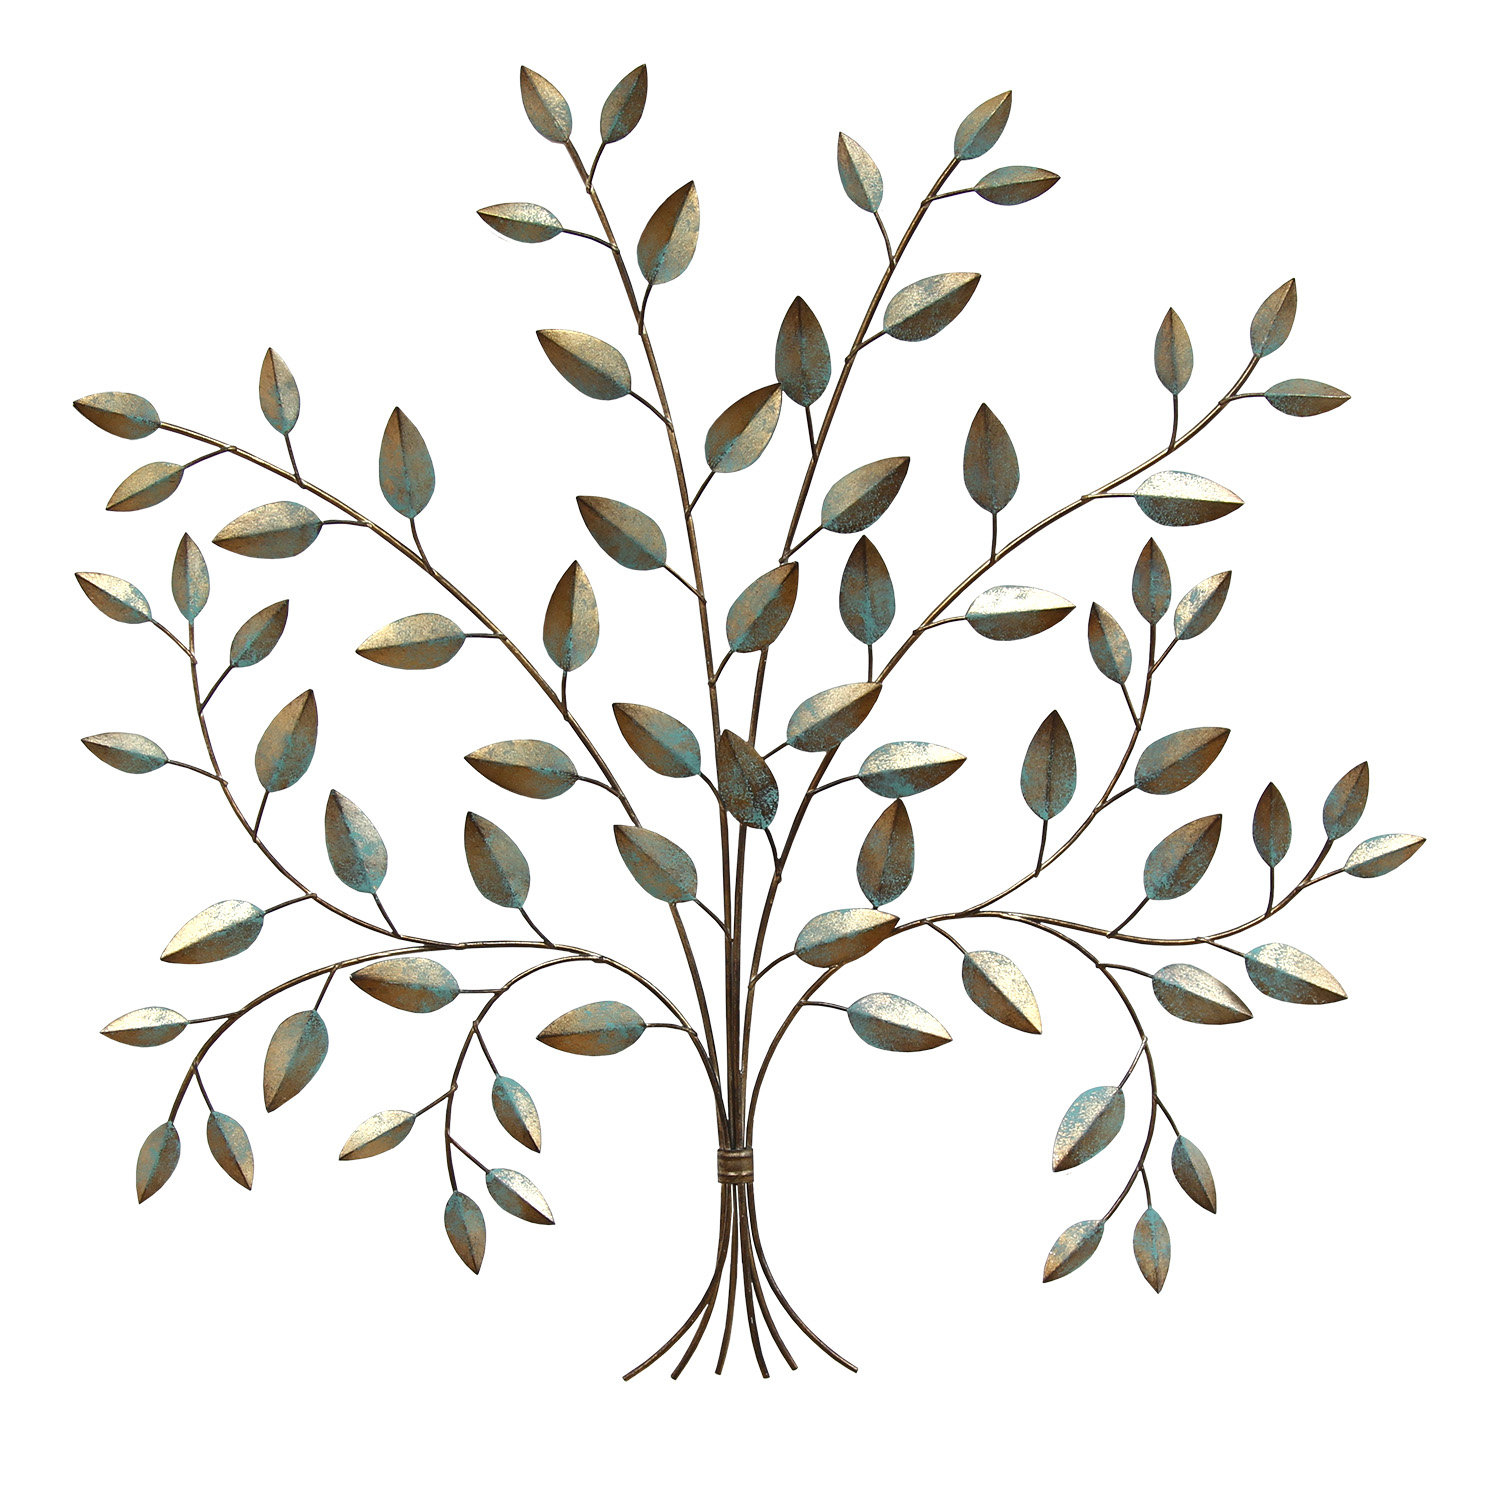 Tree Of Life Wall Décor Pertaining To Blowing Leaves Wall Decor (View 18 of 30)